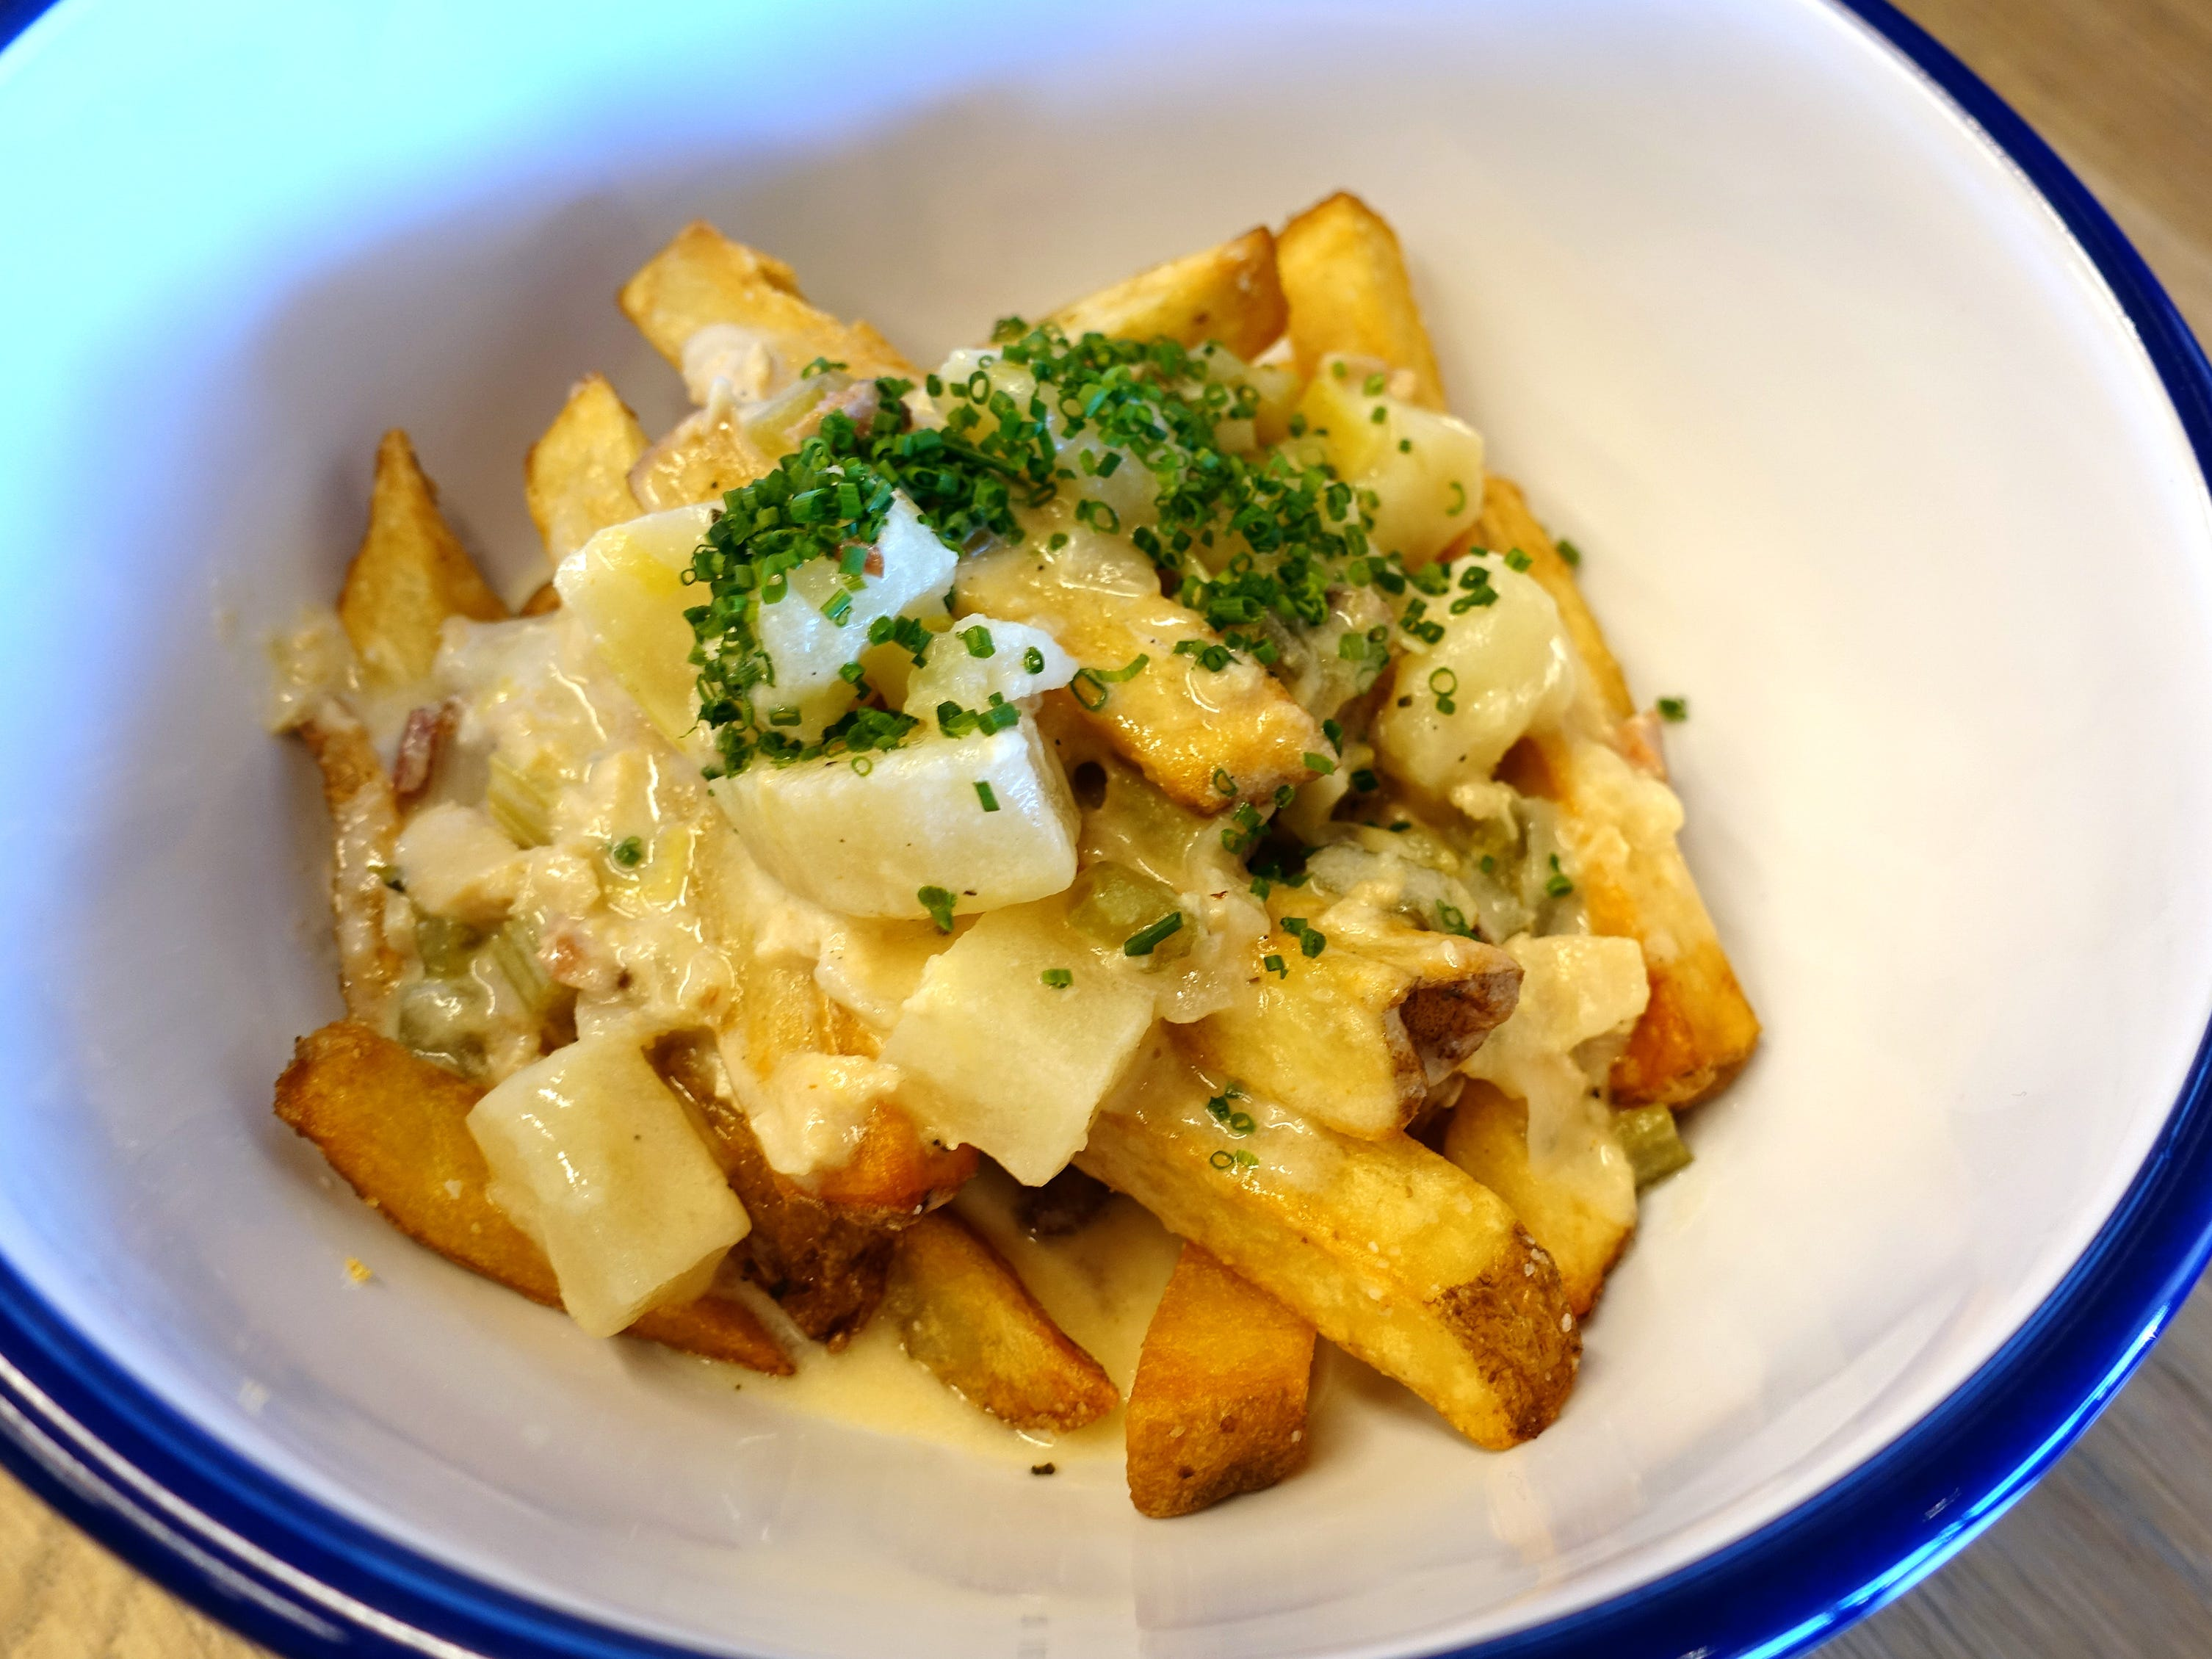 Chowder fries: Frites Street fries and chowder with Niman's bacon, chopped clams, potatoes and sherried cream at Chula Seafood Uptown in Phoenix.